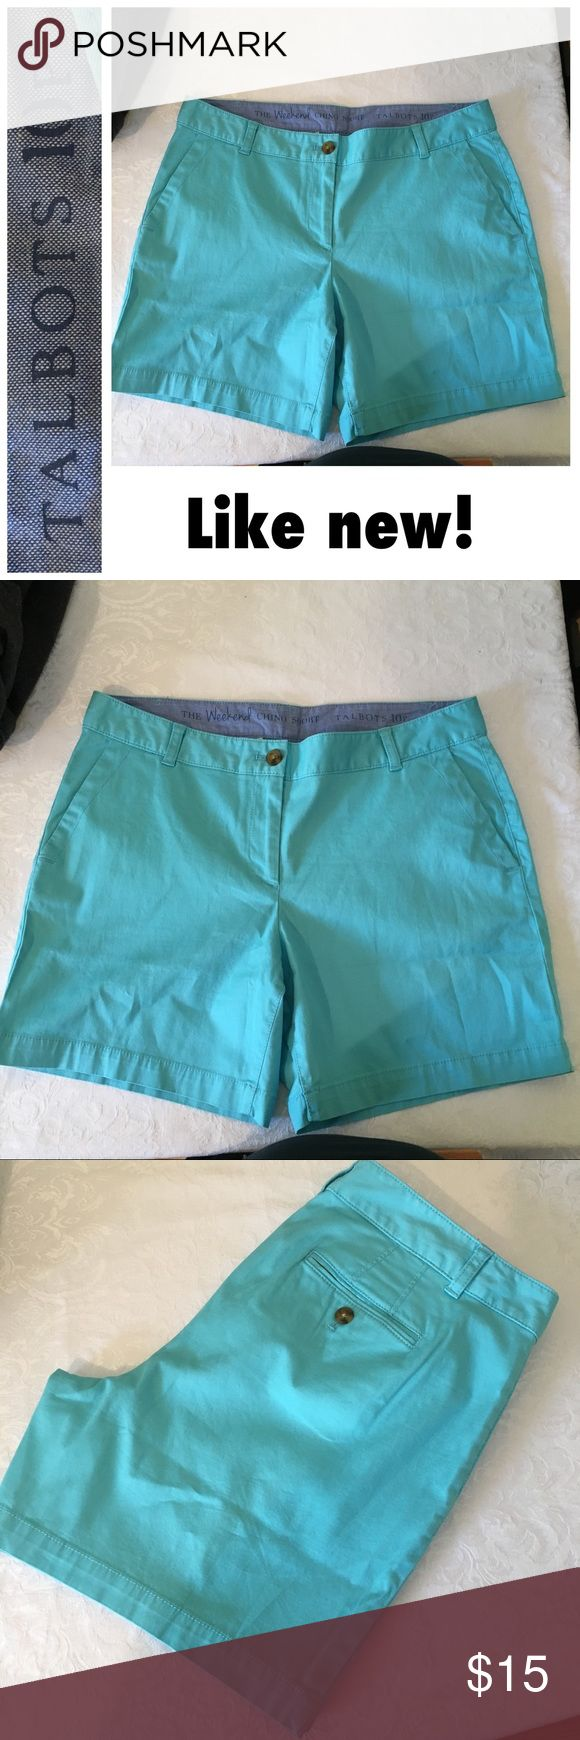 """10P Talbots Turquoise chino Shorts - LIKE NEW!! Like new condition. Talbots """"The Weekend Chino Short"""" turquoise shorts. Extra button still attached! 9"""" rise, 15"""" from top to bottom, from bottom of rise down 5"""". Check out the LL BEAN shorts I have for sale too! Reasonable offers welcome but they are priced to sell. Talbots Shorts"""